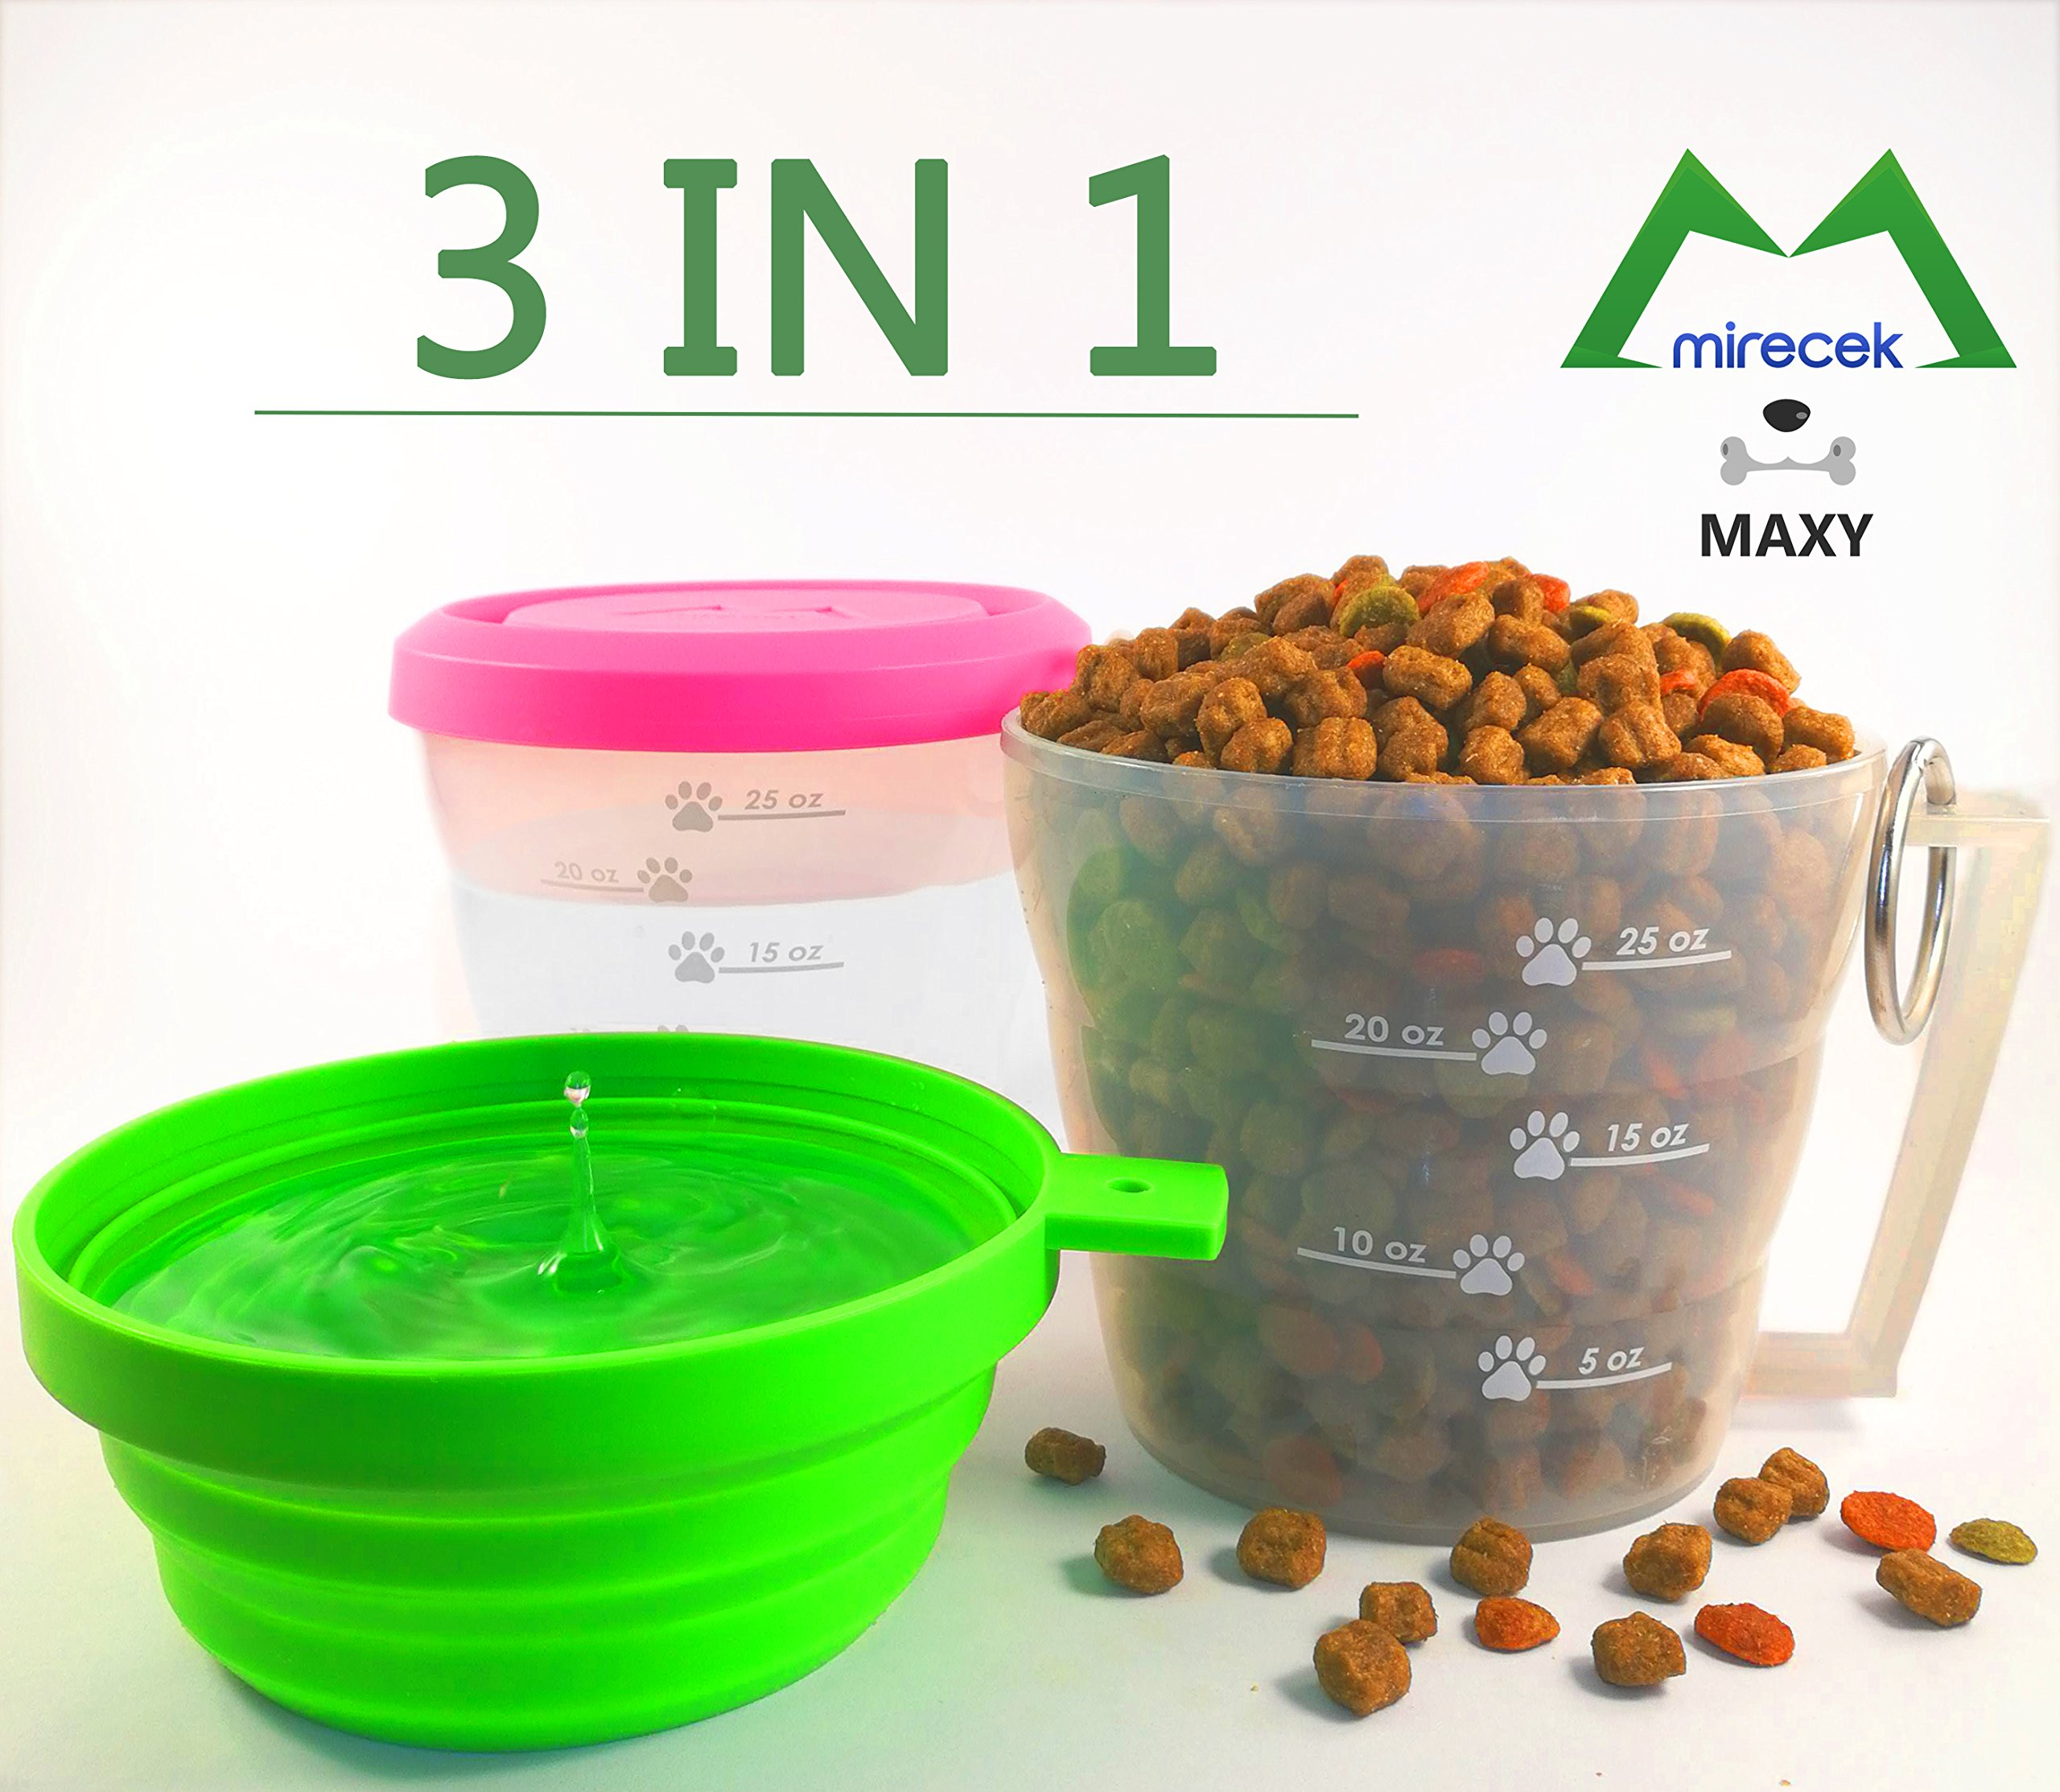 Premium Travel Dog Food Container. Collapsible Dog Bowl. Dog Food Measuring Cup. Perfect Gift for Dog. Durable Plastic. Universal Size. Dishwasher Free, BPA Free. FDA Approved. MAXY by Mirecek